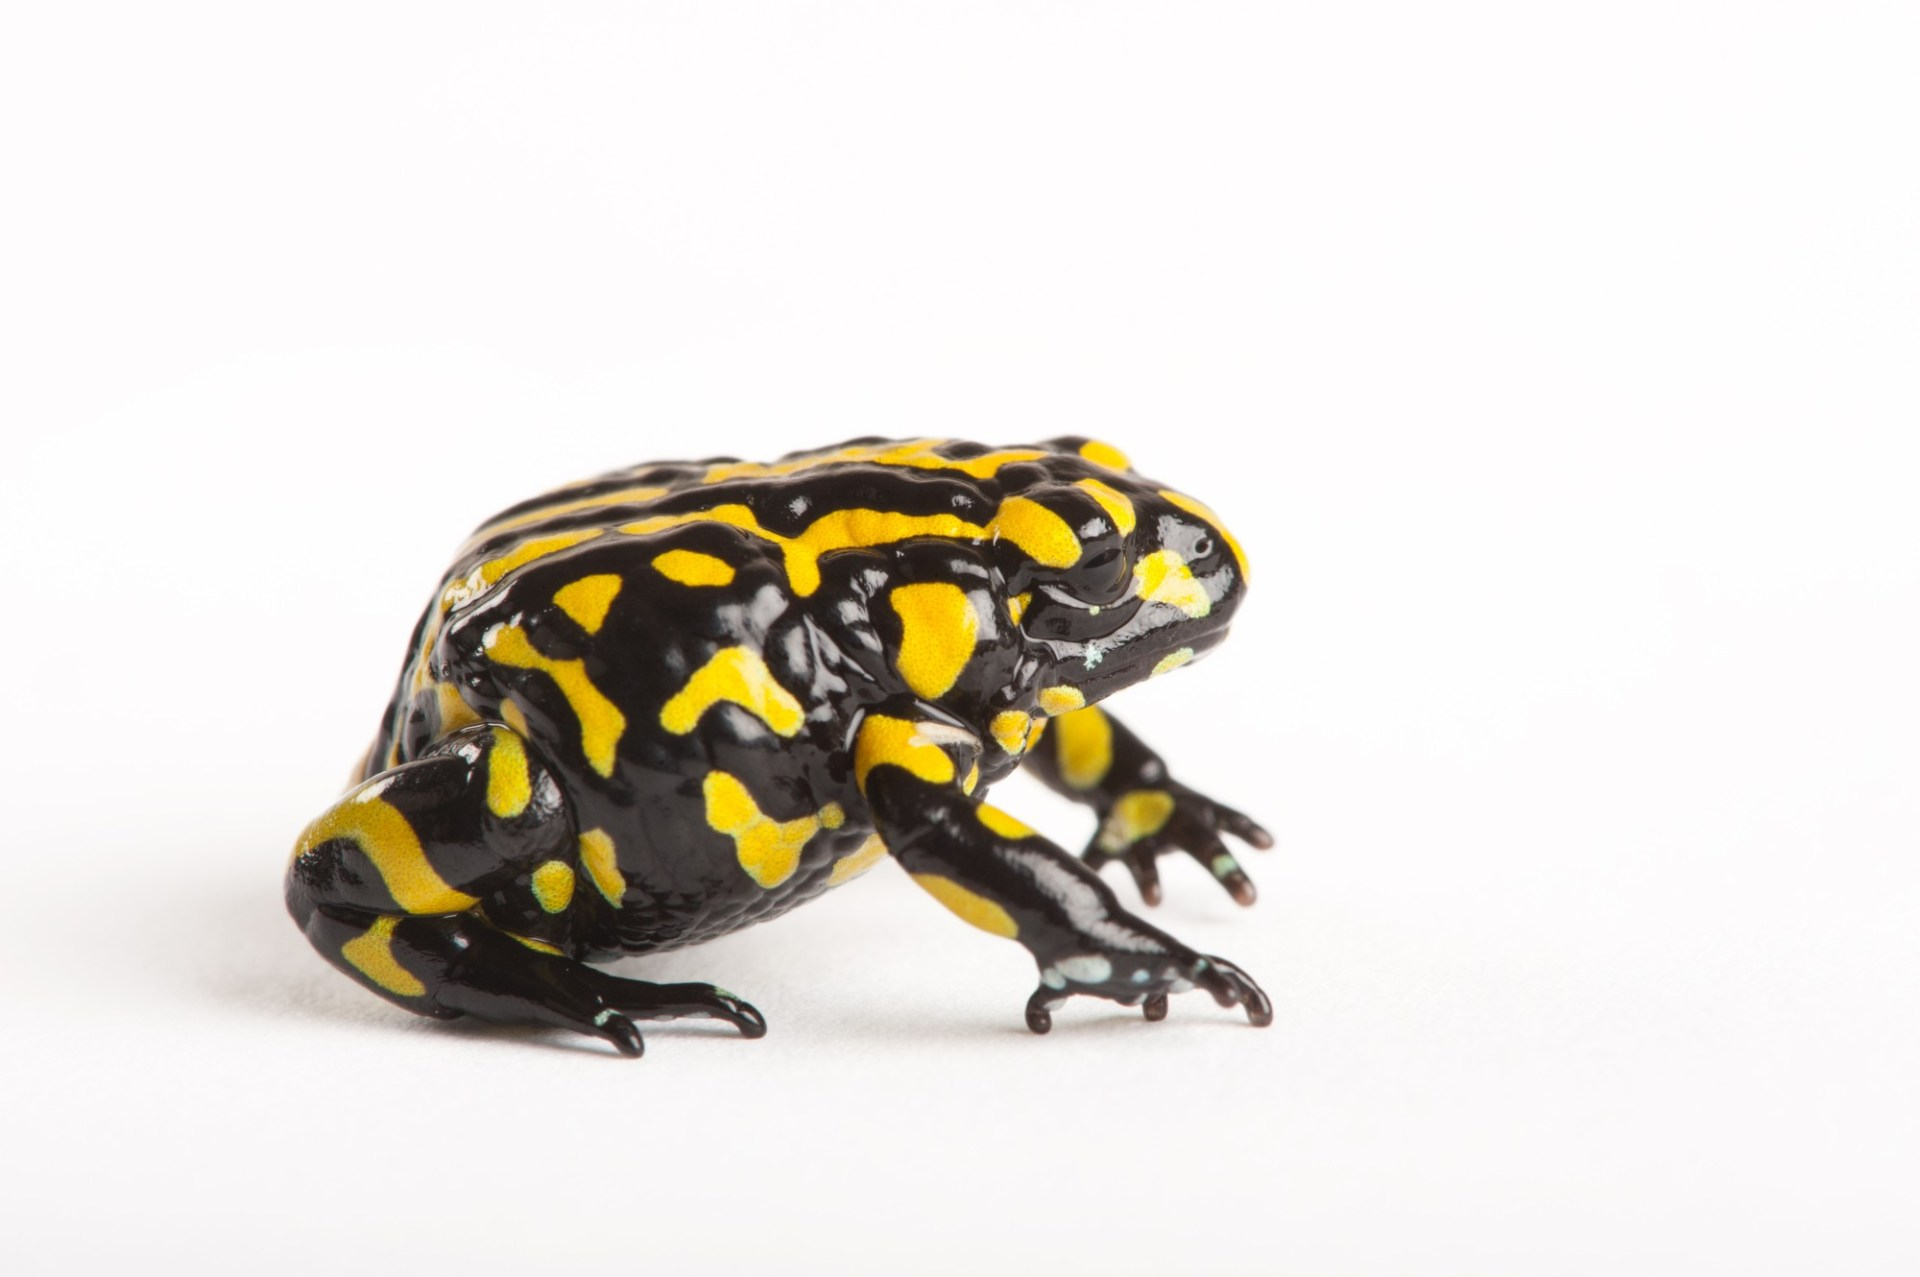 Southern corroboree frog (Pseudophryne corroboree) a critically endangered species at the Healesville Wildlife Sanctuary in Melbourne, Australia.